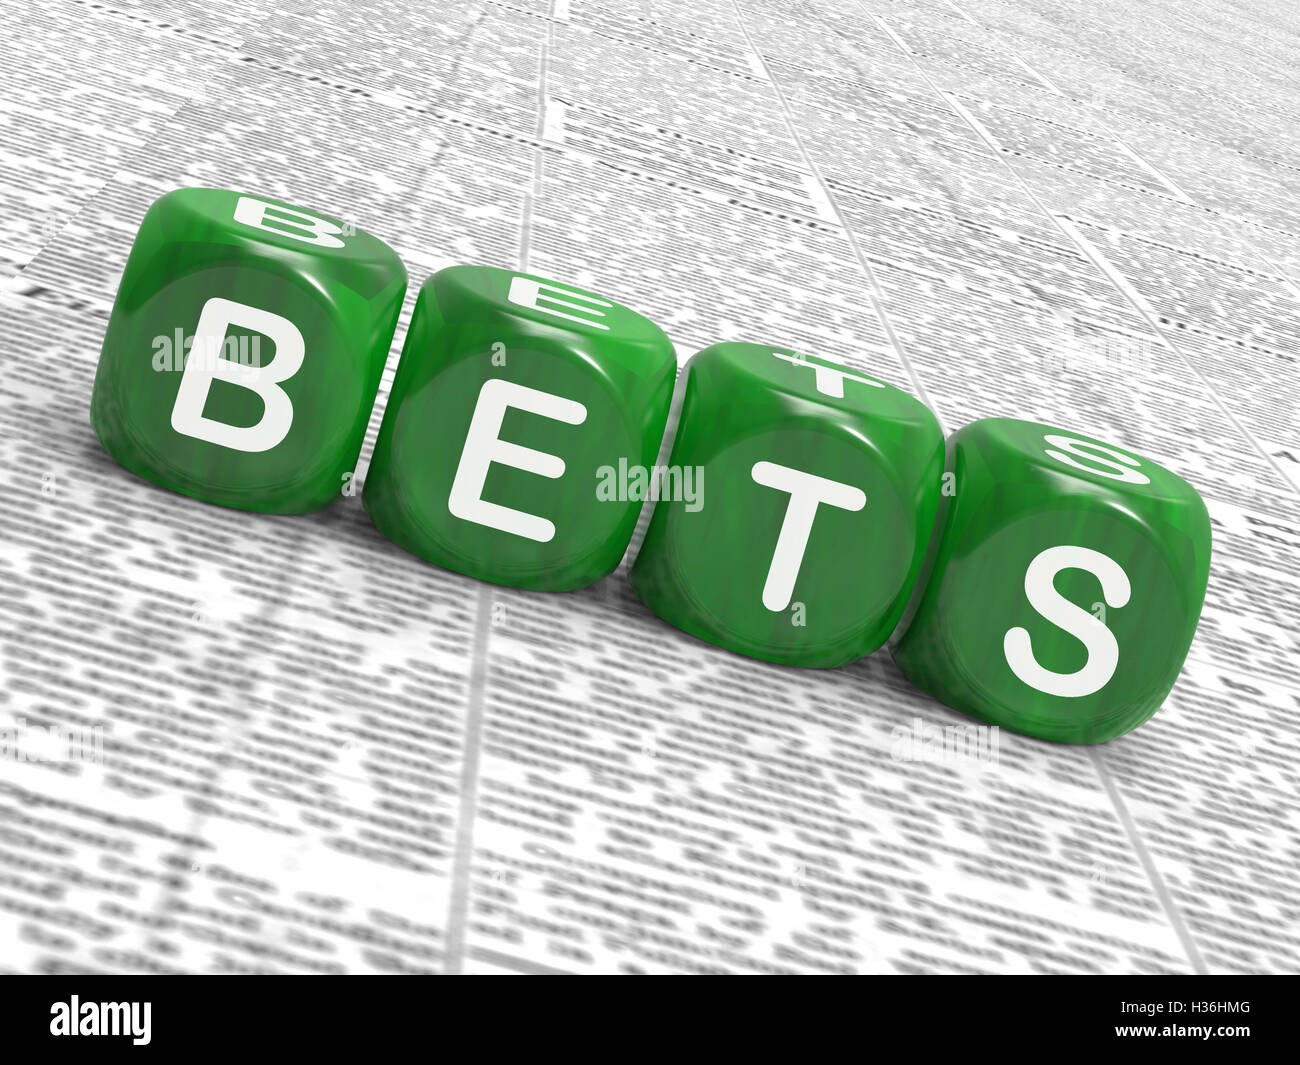 Bets Dice Show Gambling Chance Or Sweep Stake - Stock Image